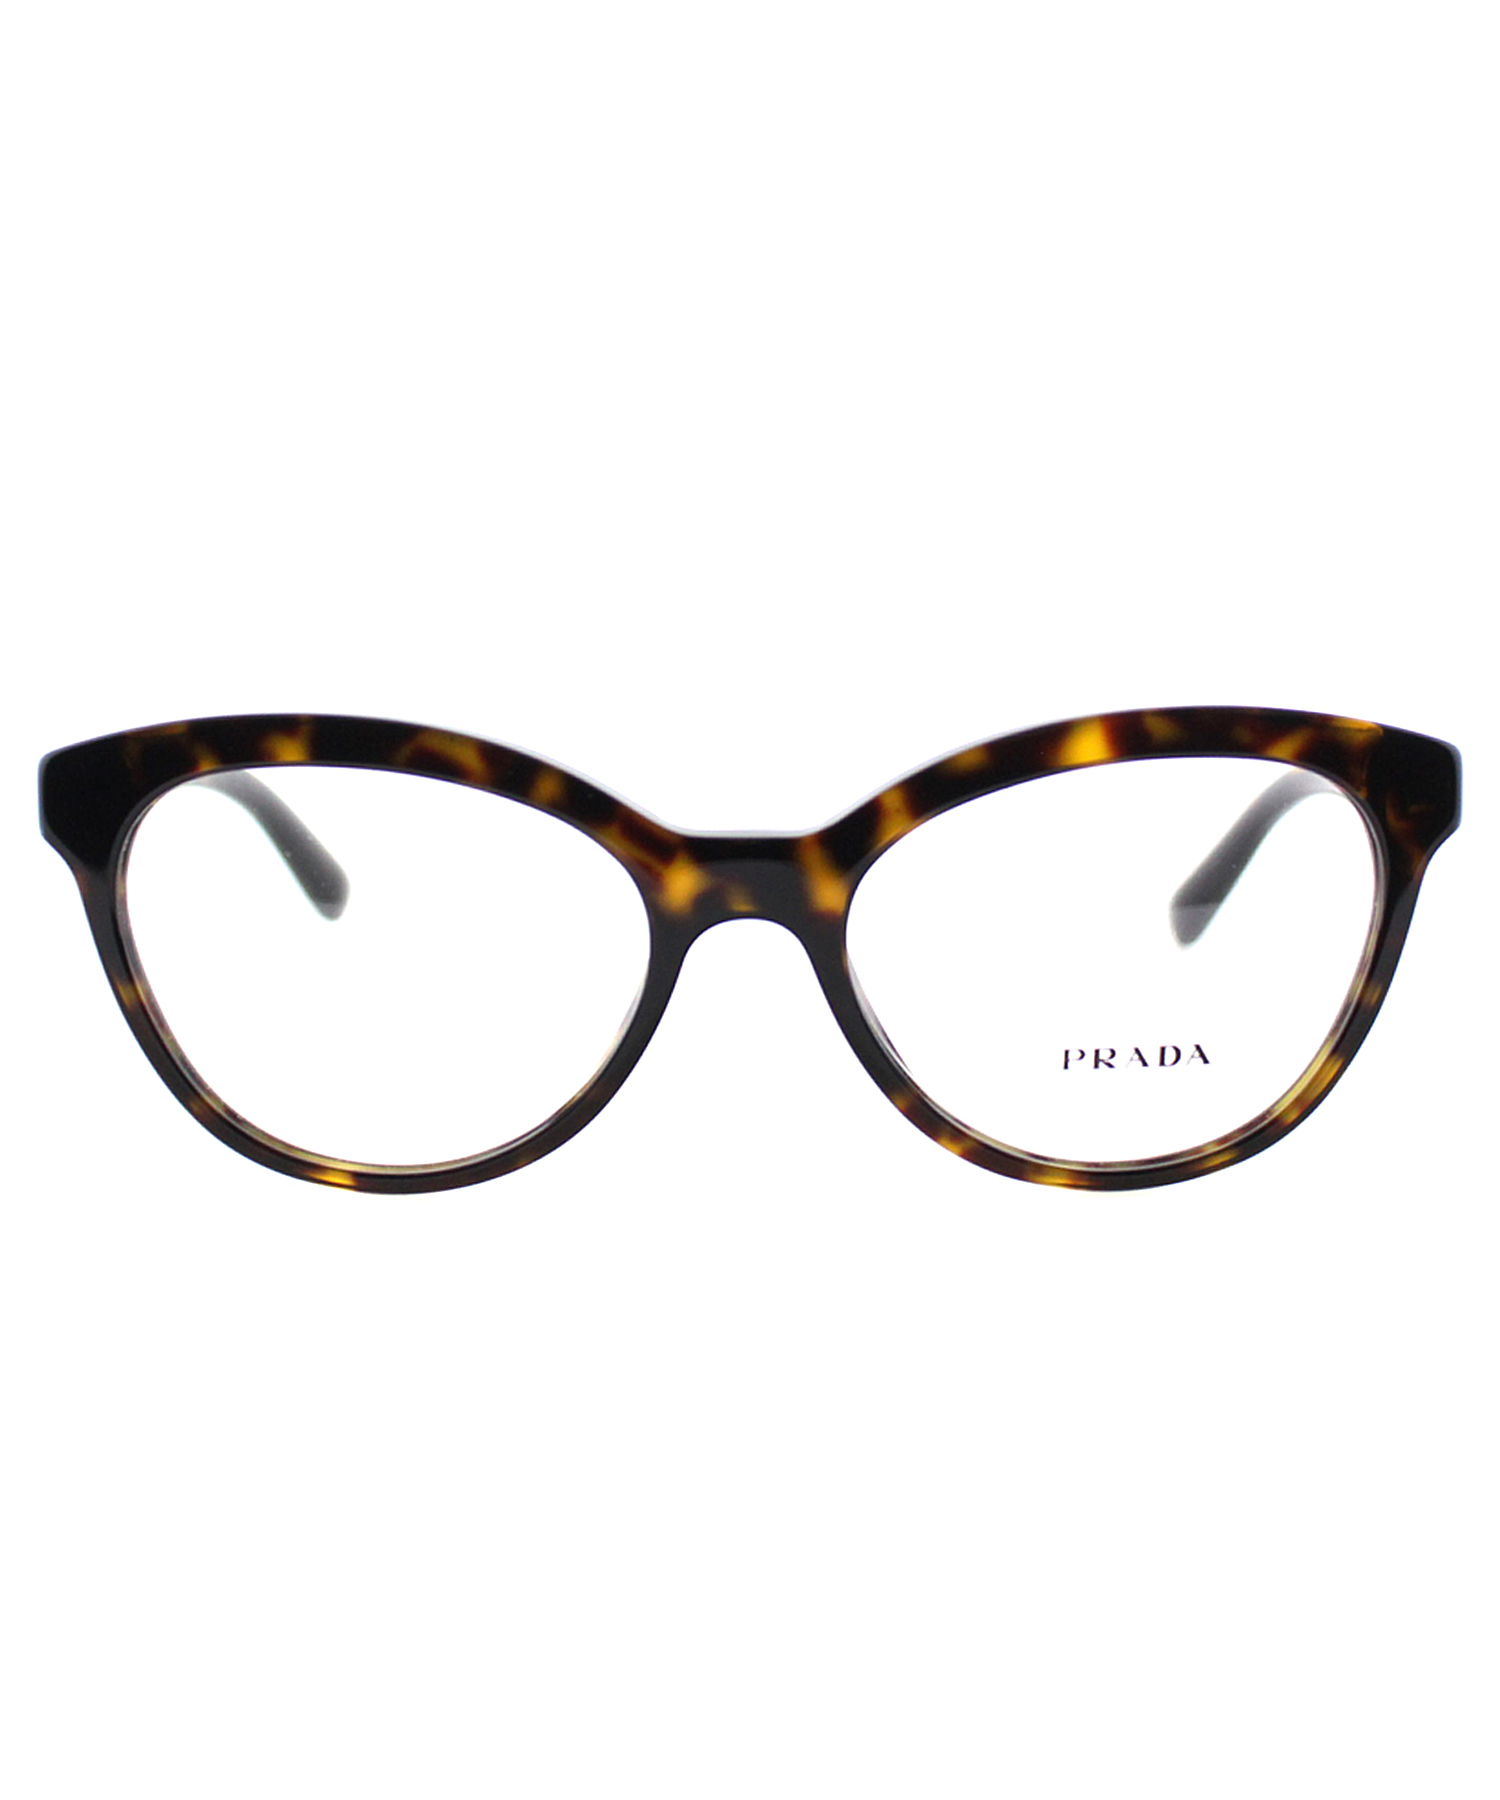 Prada Cat-eye Metal Eyeglasses in Brown Lyst